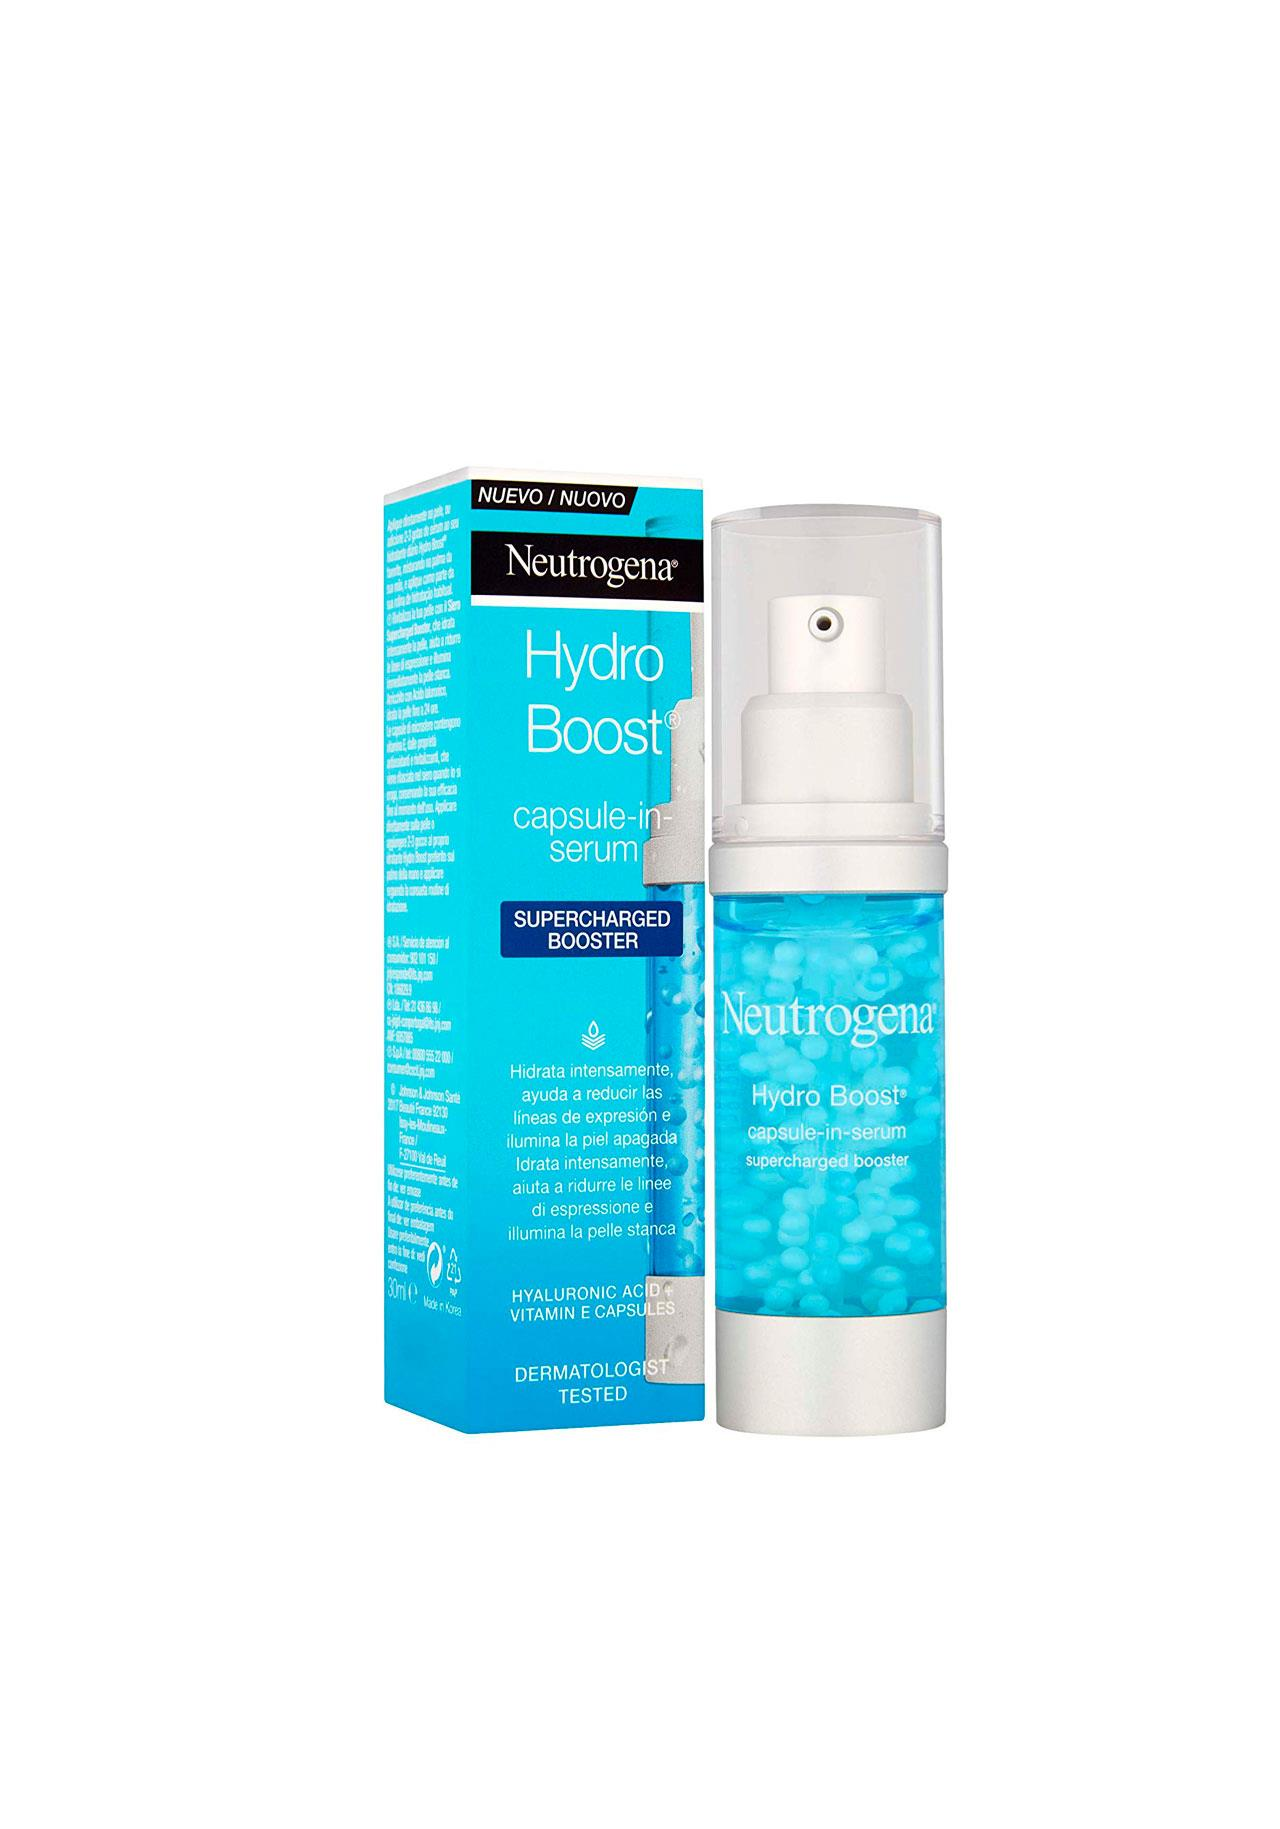 black-friday-amazon-serum-neutrogena